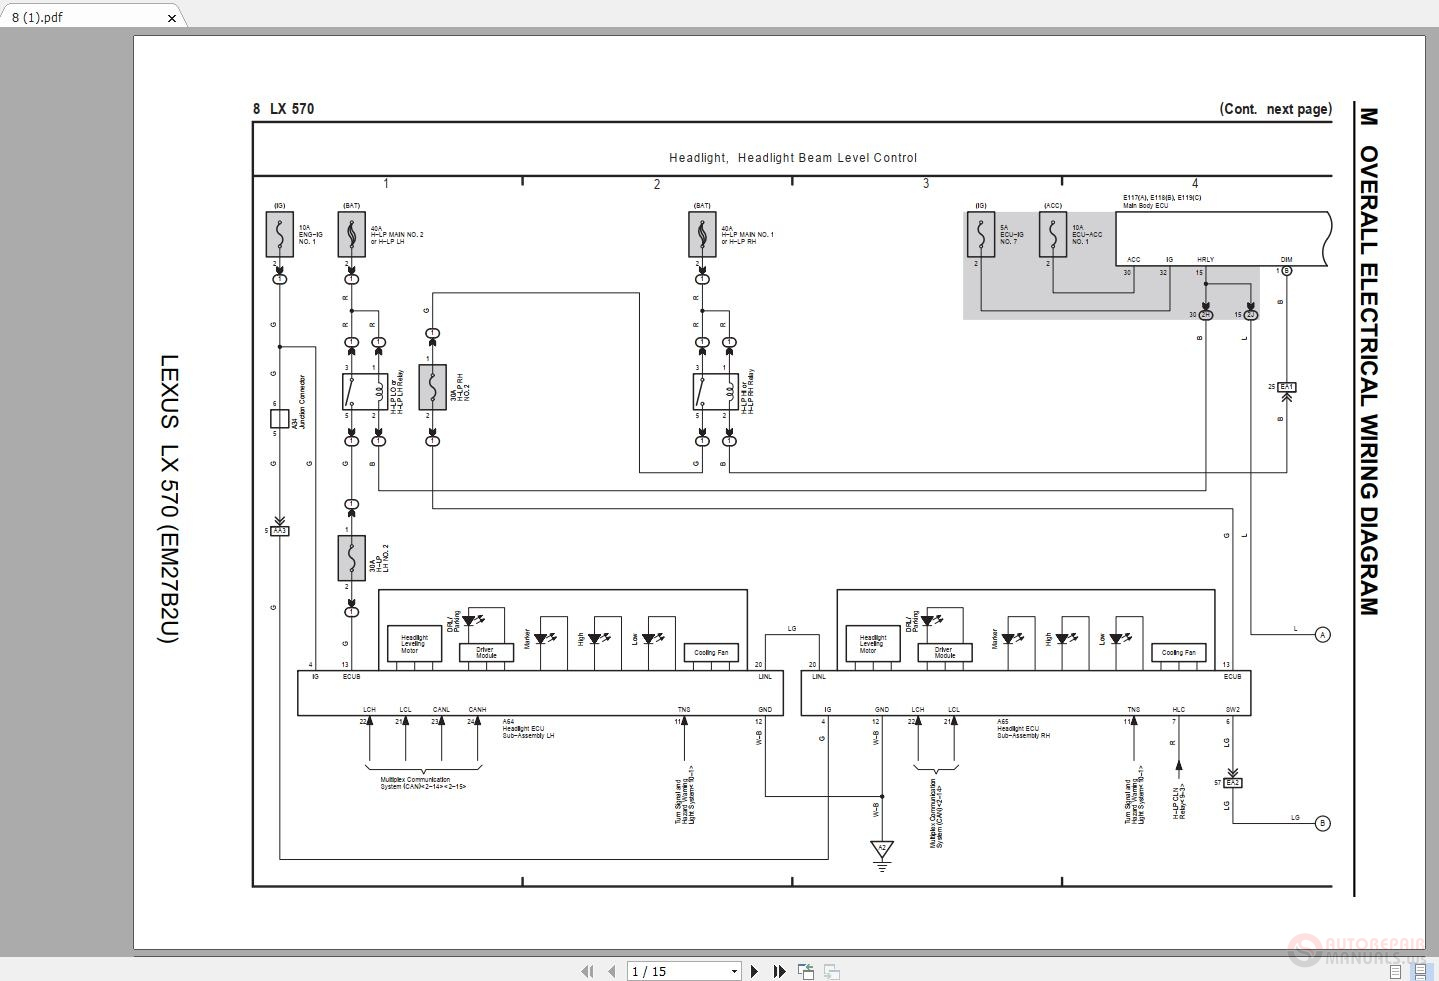 [SCHEMATICS_4JK]  LEXUS LX570 2016-2018 Electrical Wiring Diagram | Auto Repair Manual Forum  - Heavy Equipment Forums - Download Repair & Workshop Manual | Lexus Lx 470 Wiring Diagram |  | Auto Repair Manual Forum